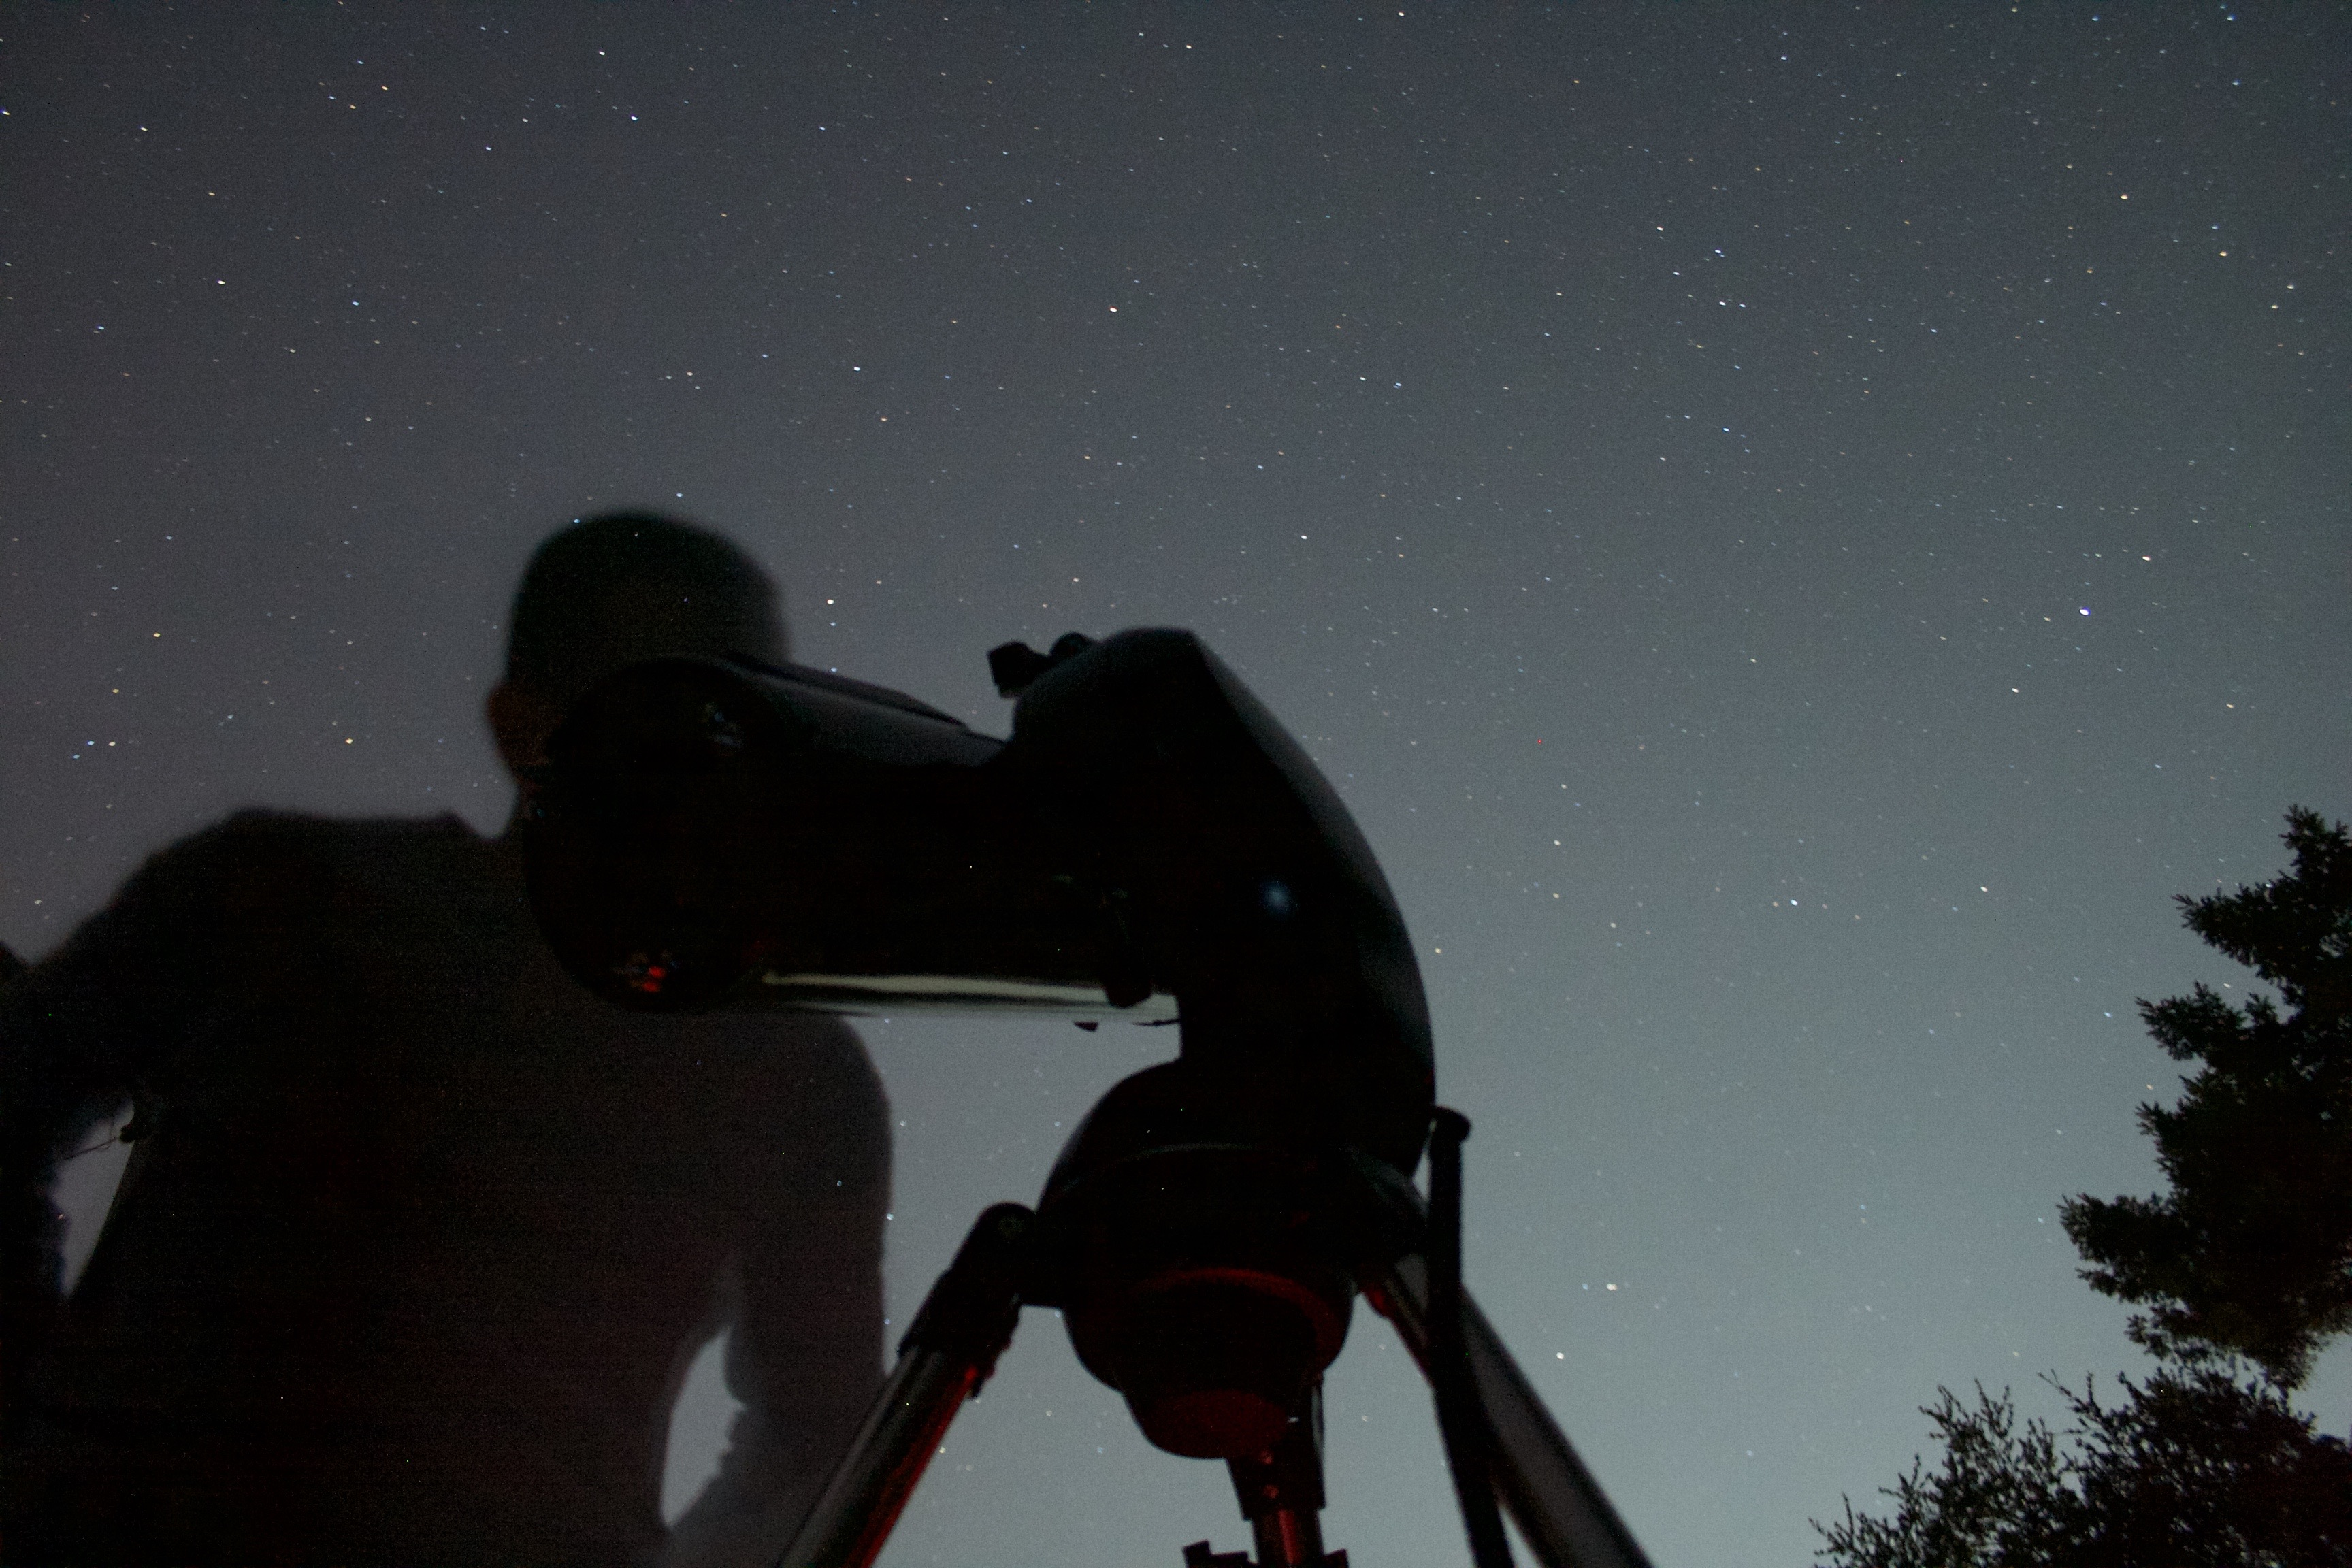 eVscope users will have the ability to observe the night sky as never before—while they contribute to science and to the defense of our planet and every living thing on it. (credit: C. Chalumeau & F. Marchis)